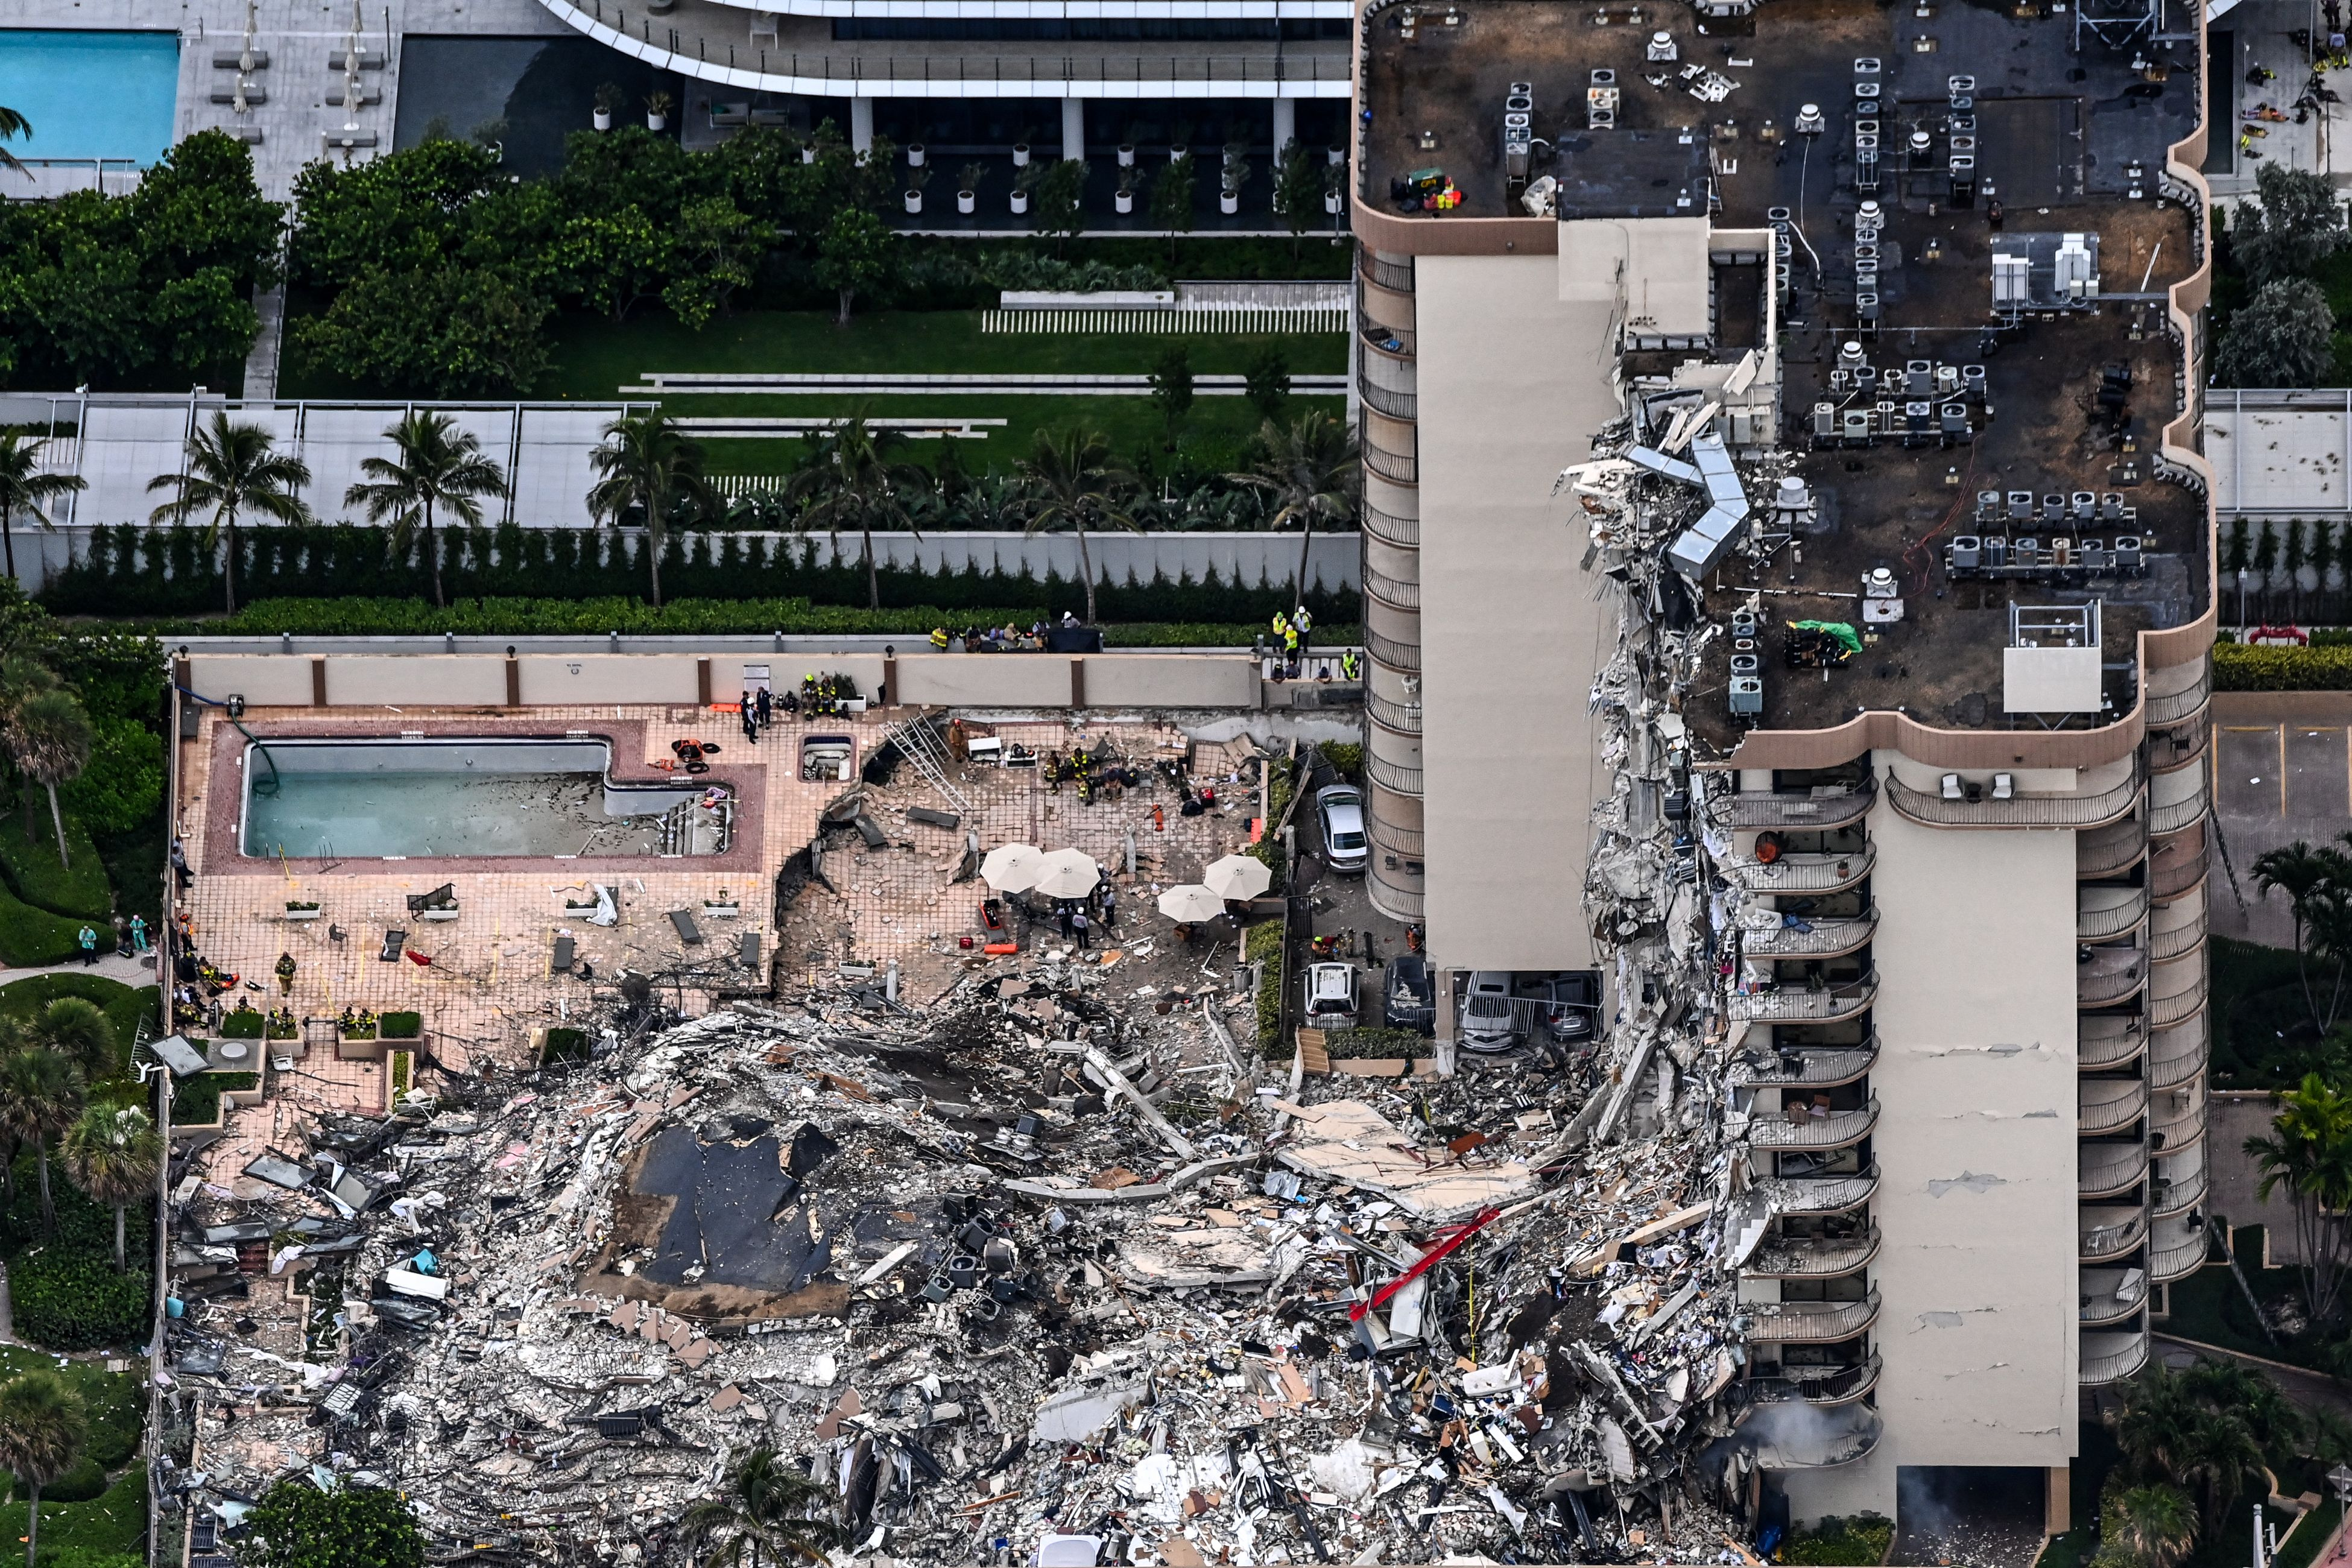 This aerial view shows search and rescue personnel working on site after the partial collapse of the Champlain Towers South in Surfside, north of Miami Beach, on June 24, 2021. (Photo by CHANDAN KHANNA/AFP via Getty Images)